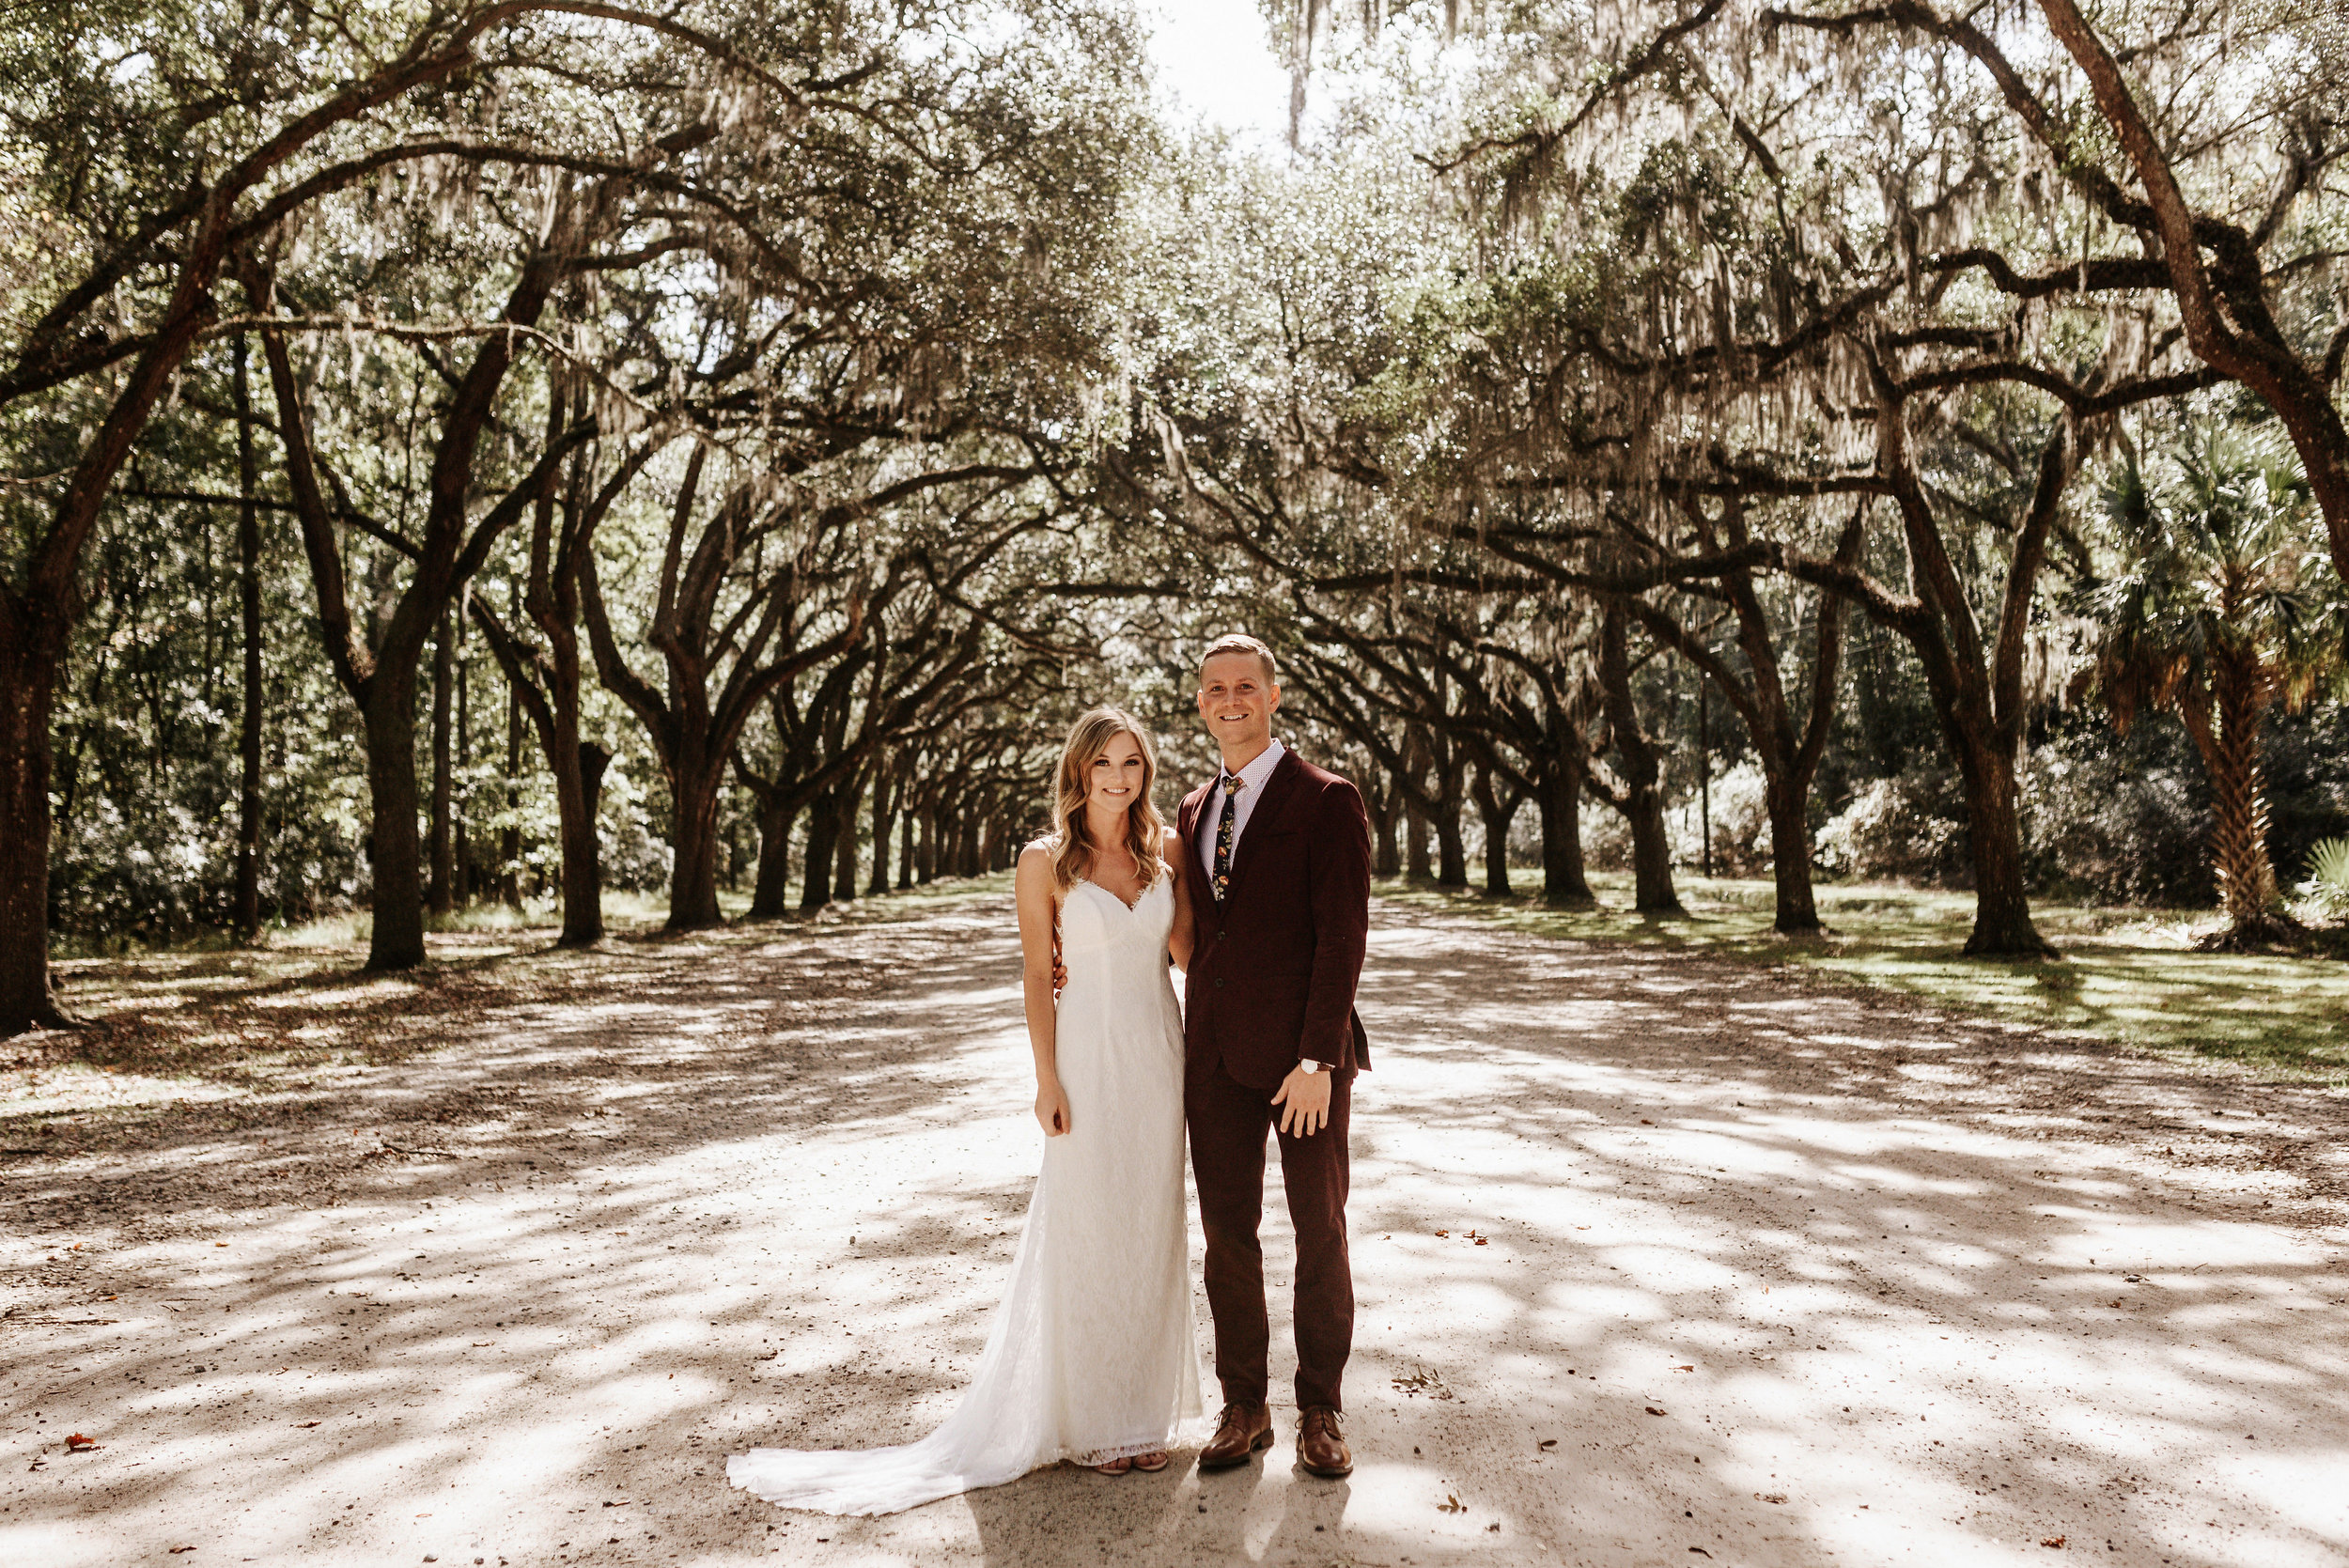 Kourtney_Sean_Savannah_Georgia_Wedding_Wormsloe_Histroic_Site_Coastal_Georgia_Botanical_Gardens_Photography_by_V_3644.jpg